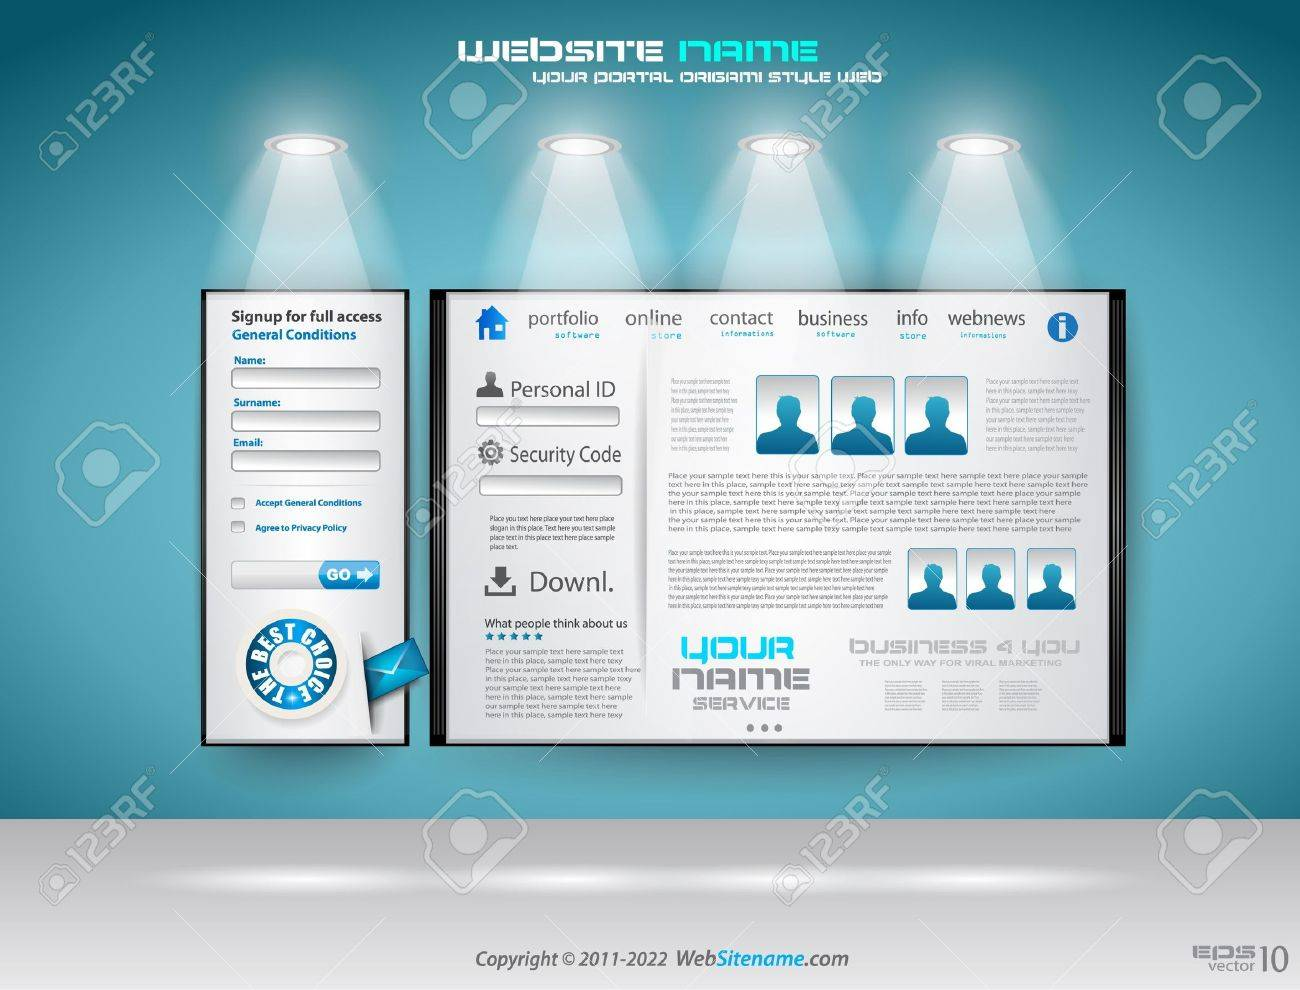 Original Style shopfront showroom website template with spotlights featuring the main panel and design elements. Stock Vector - 10298543